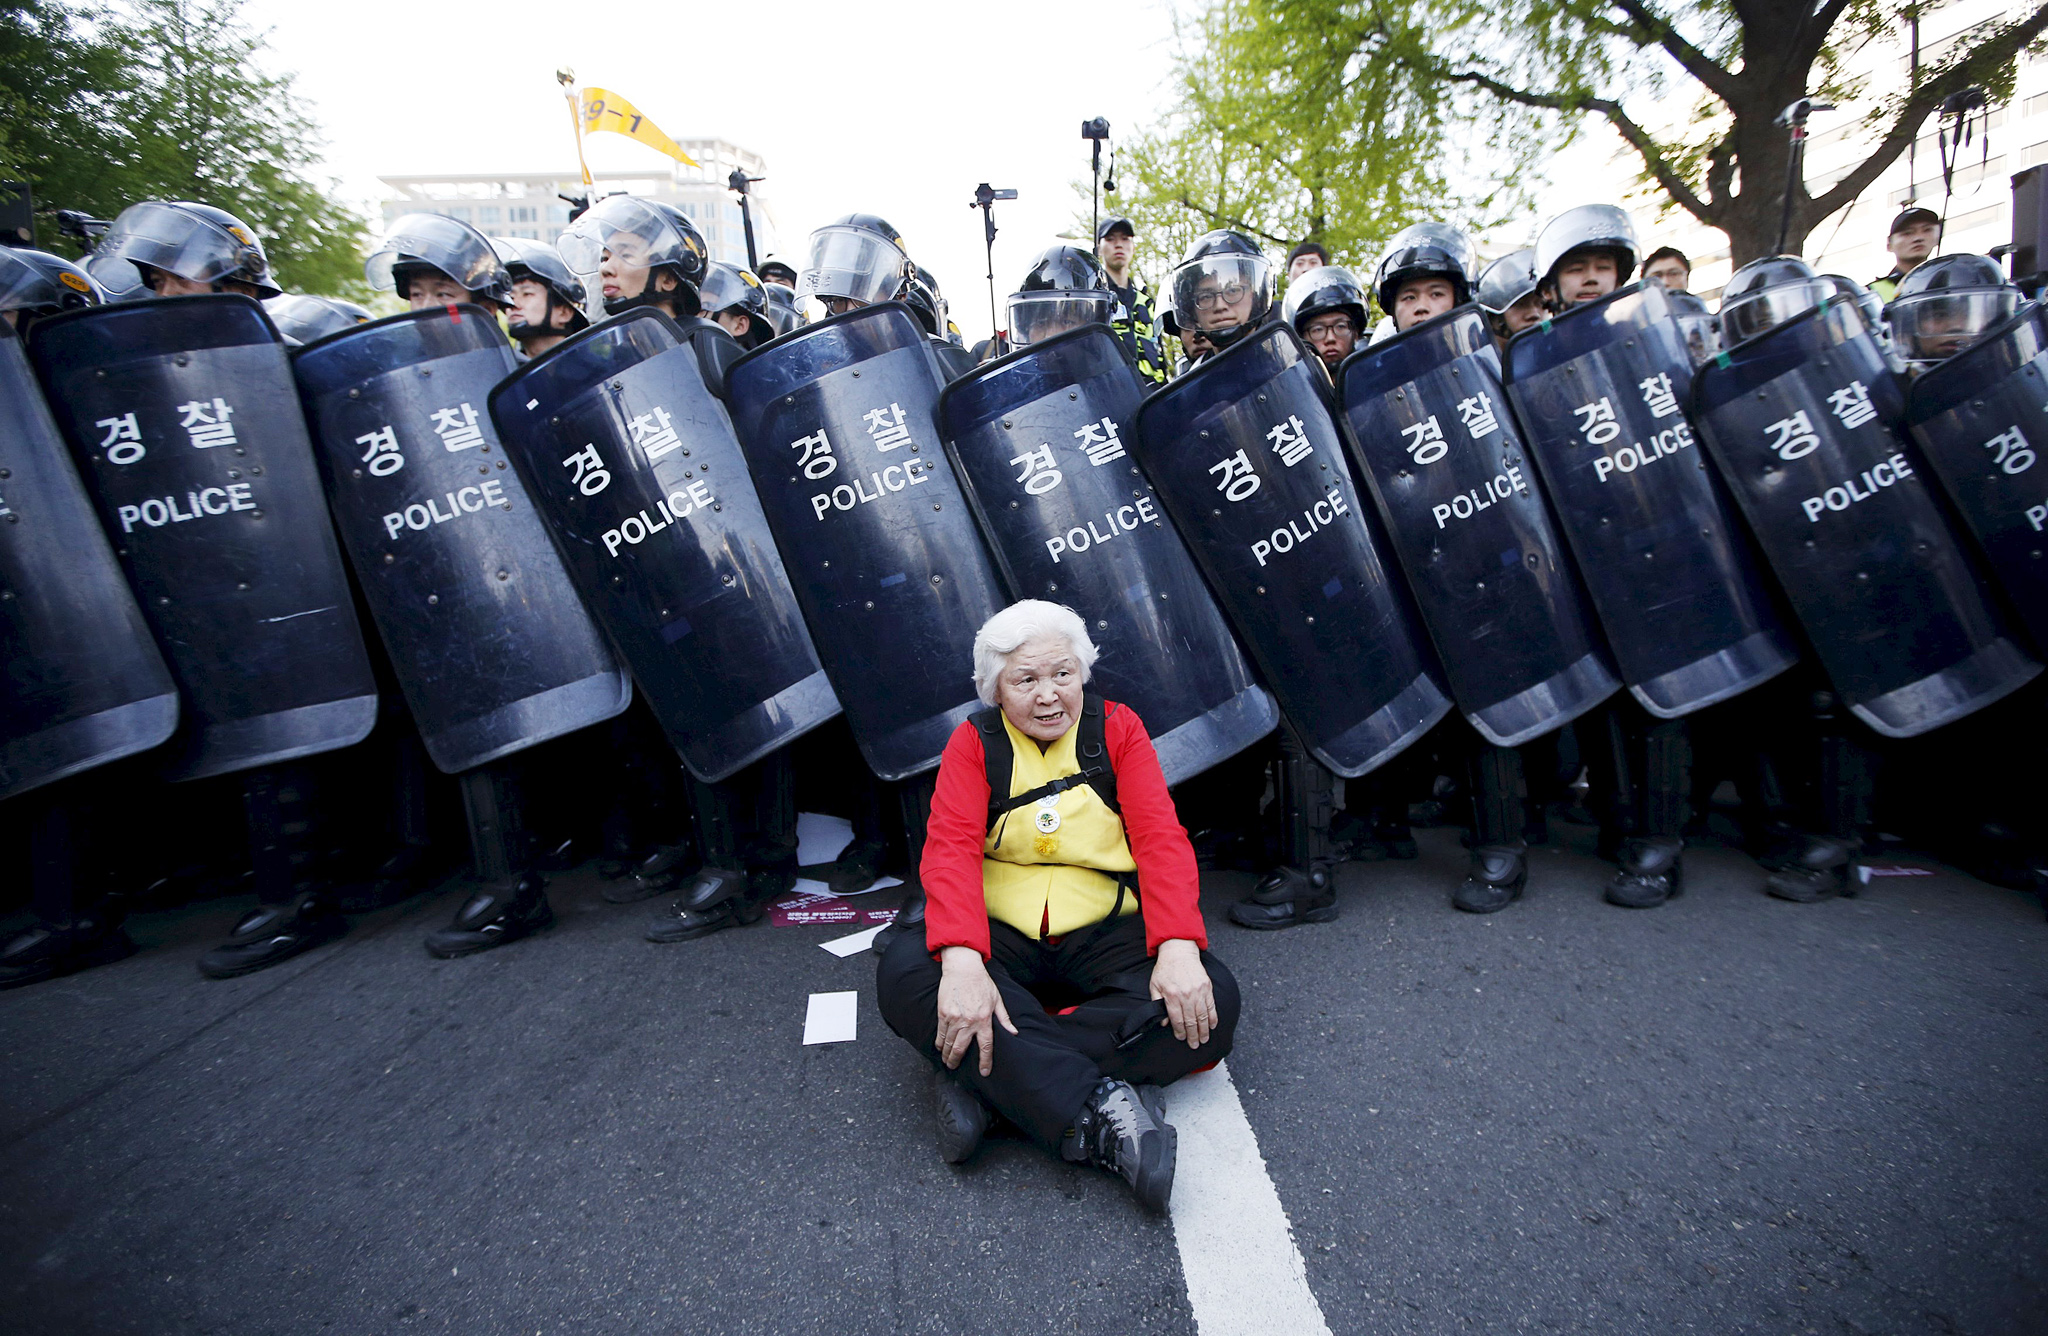 An elderly woman sits on ground as she is blocked by barricade of policemen while marching down street during rally in central Seoul...An elderly woman sits on the ground as she is blocked by a barricade of policemen while marching down the street during a rally in central Seoul, South Korea, April 24, 2015. About 260,000 workers took part in the nationwide one-day strike, including about 60,000 government employees and 10,000 teachers, according to the Korean Federation of Trade Unions. They protested against the government's push to cut pensions and ease rules for firing employees, according to local media.  REUTERS/Kim Hong-Ji